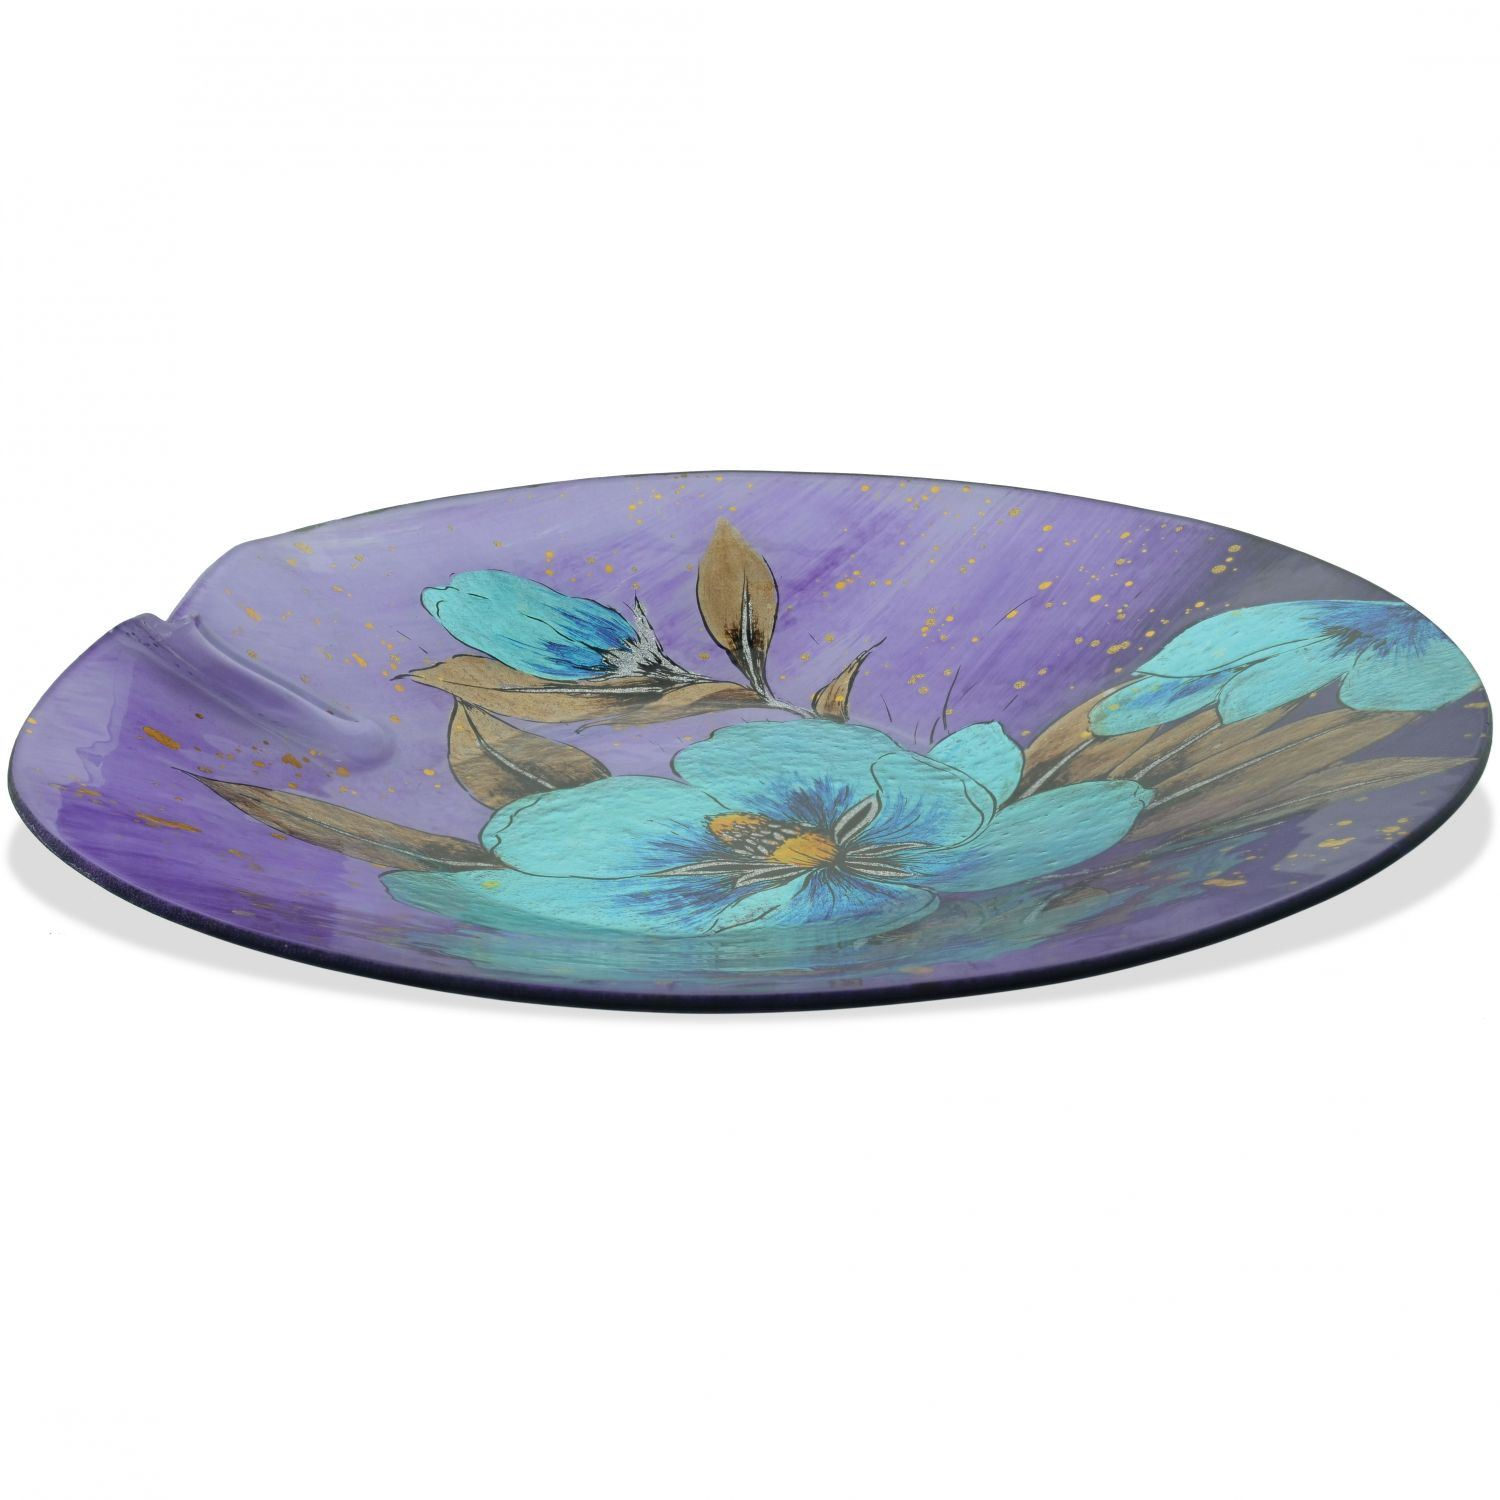 Picture of Peony Glass Plate and Stand